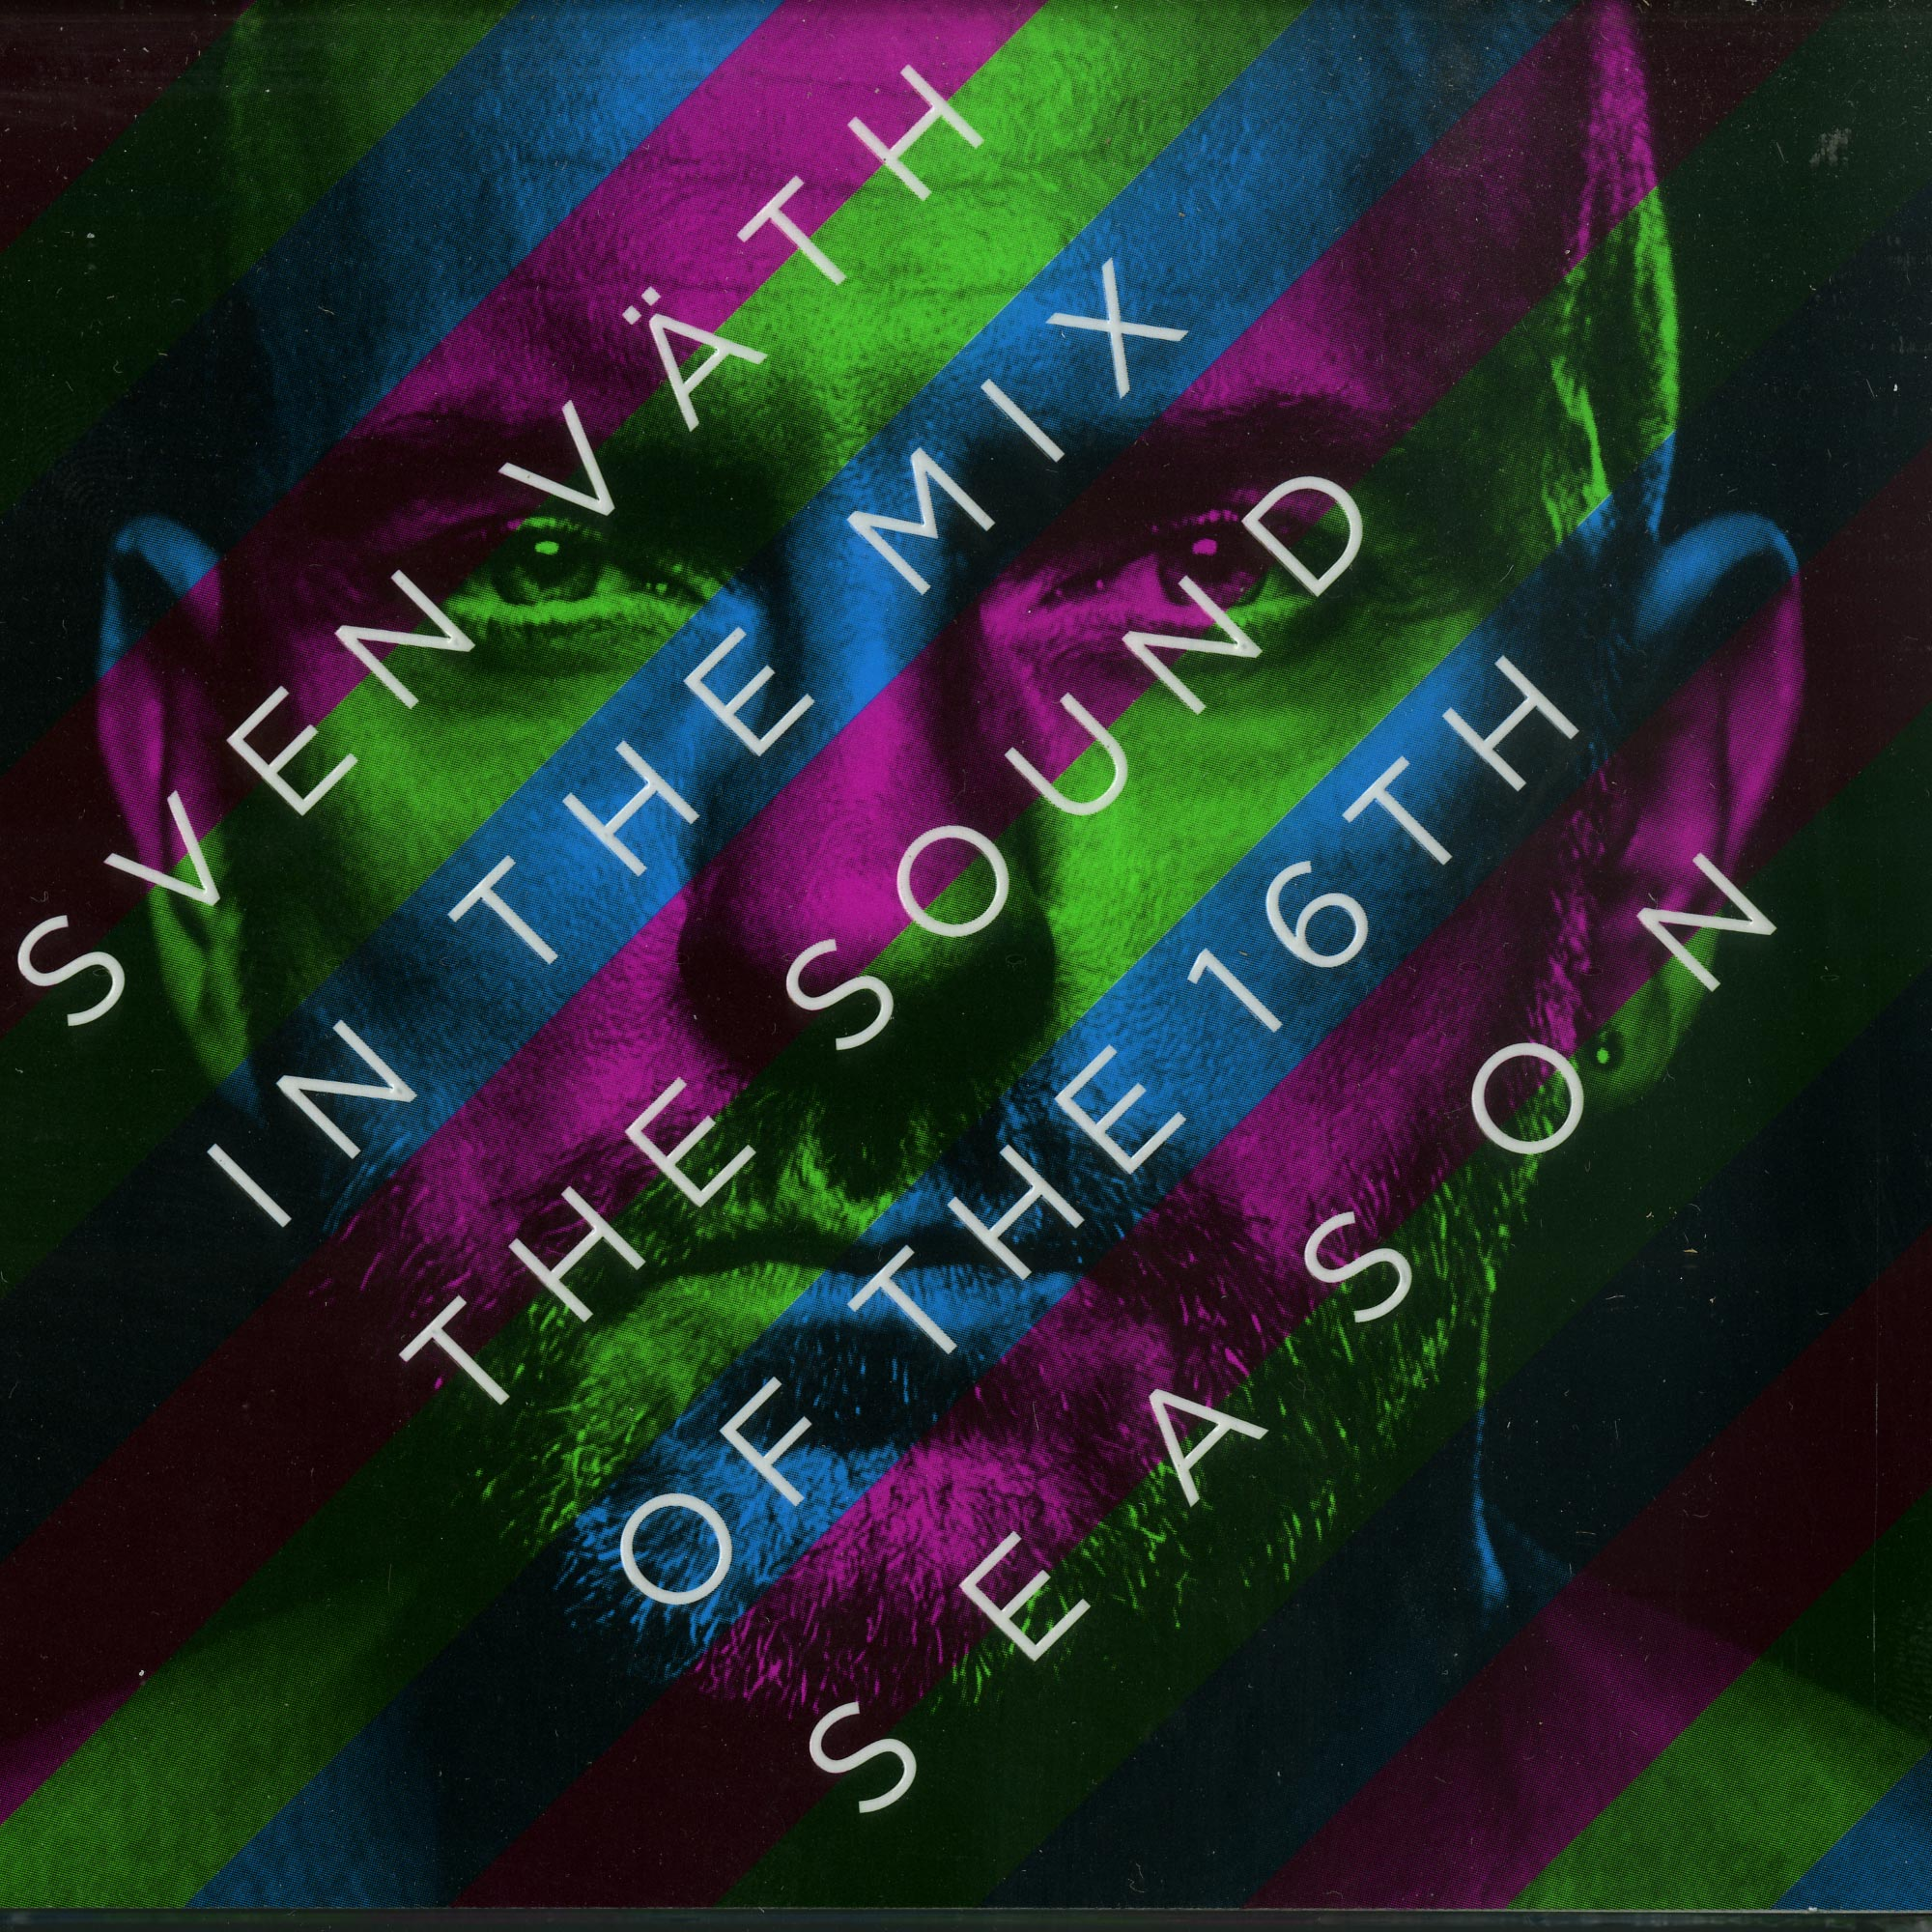 Sven Vaeth In The Mix - THE SOUND OF THE 16TH SEASON